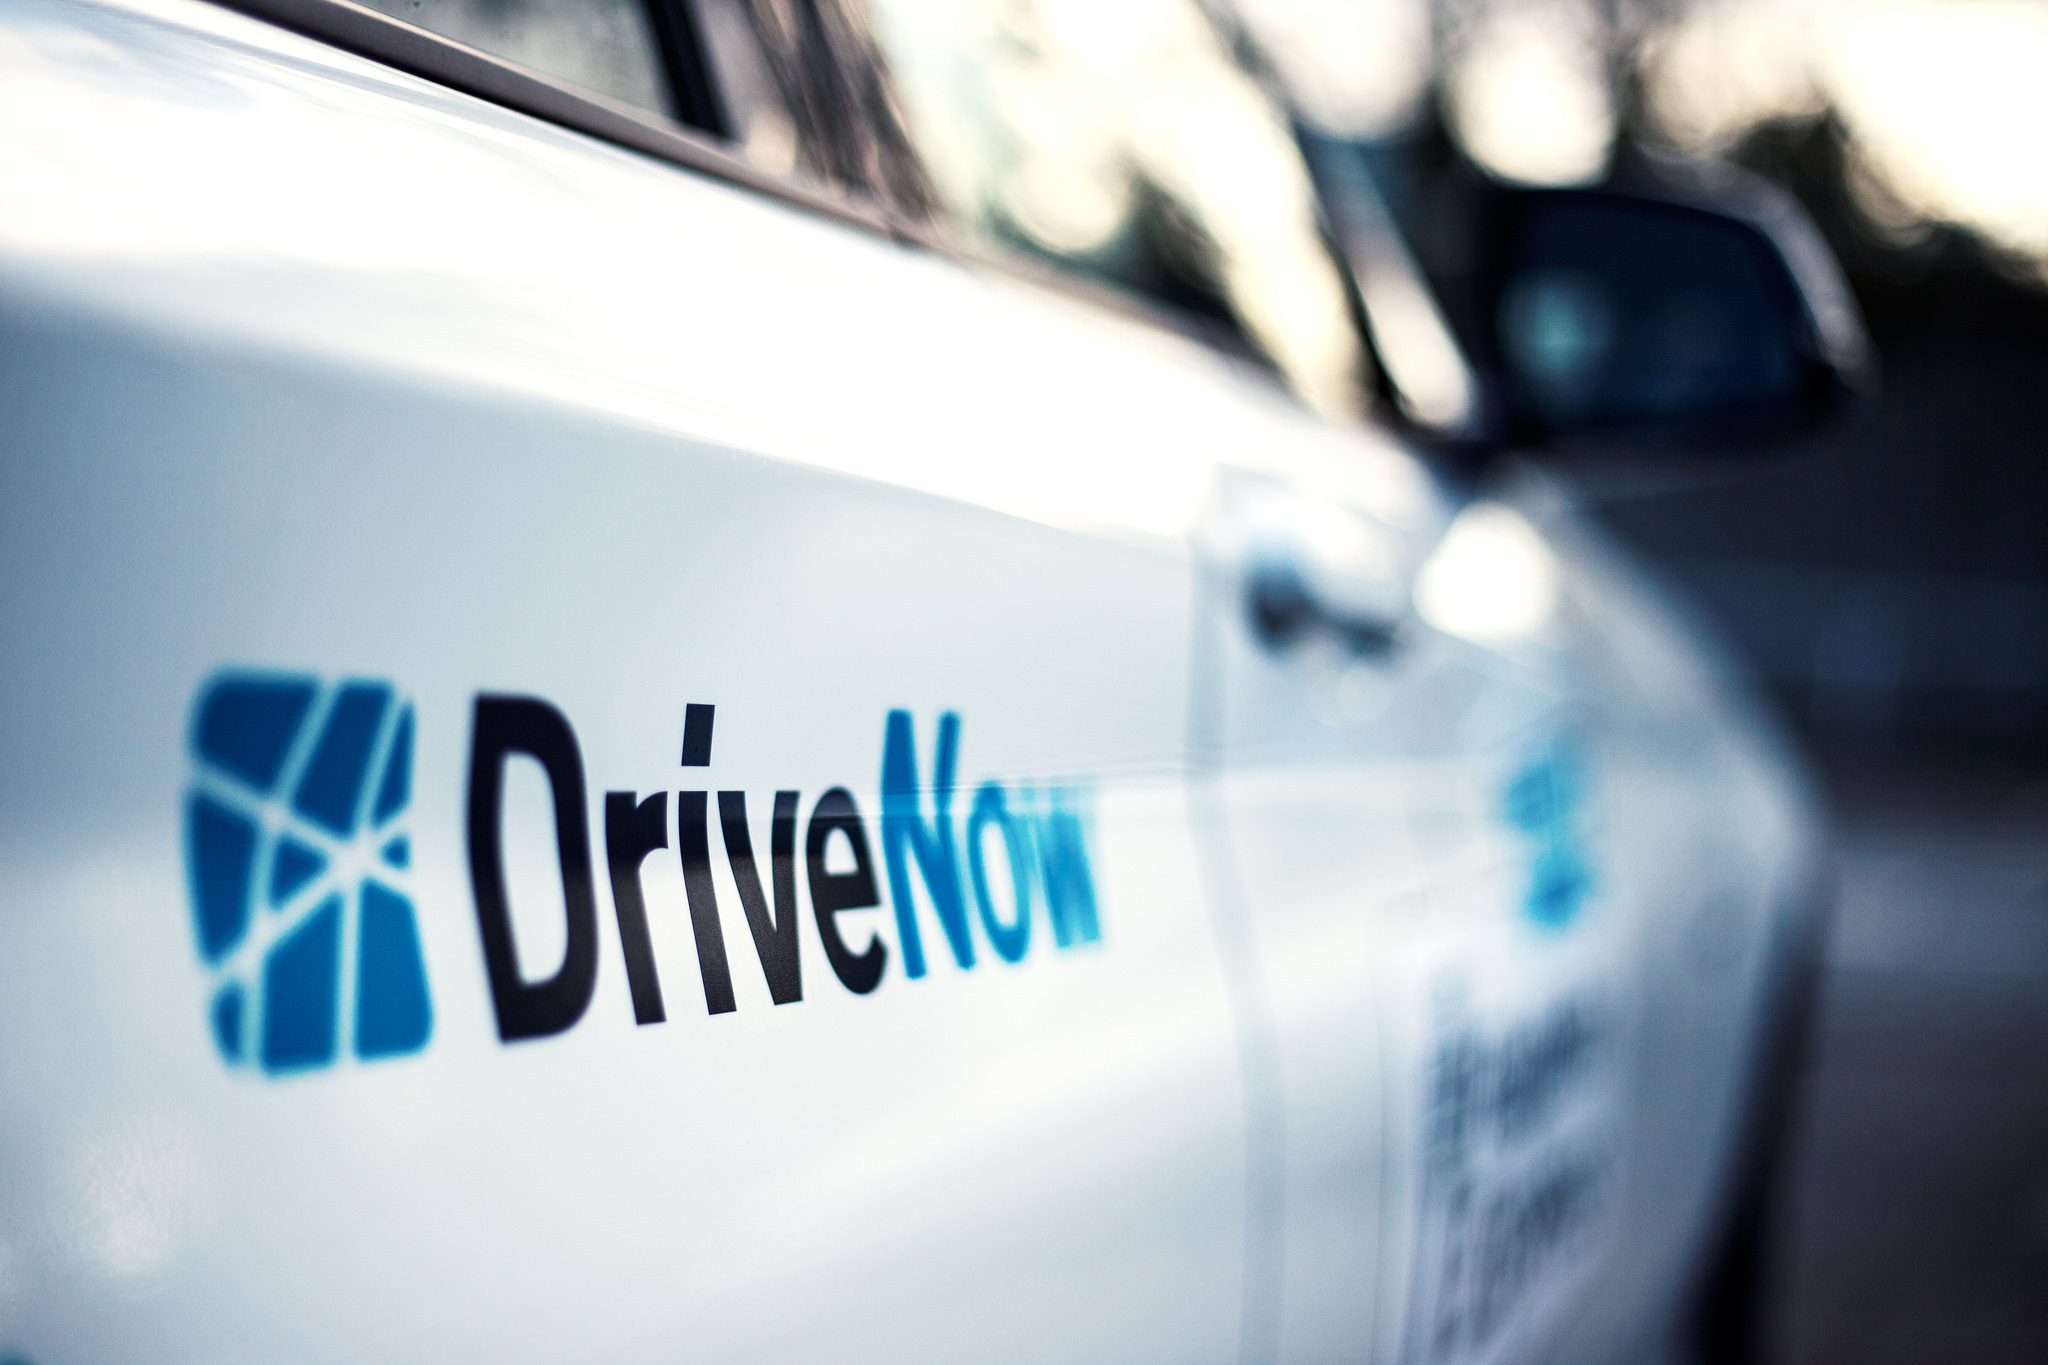 Drivenow Düsseldorf The Extraordinary Ease Of Drivenow Gps Based Car Sharing Jon